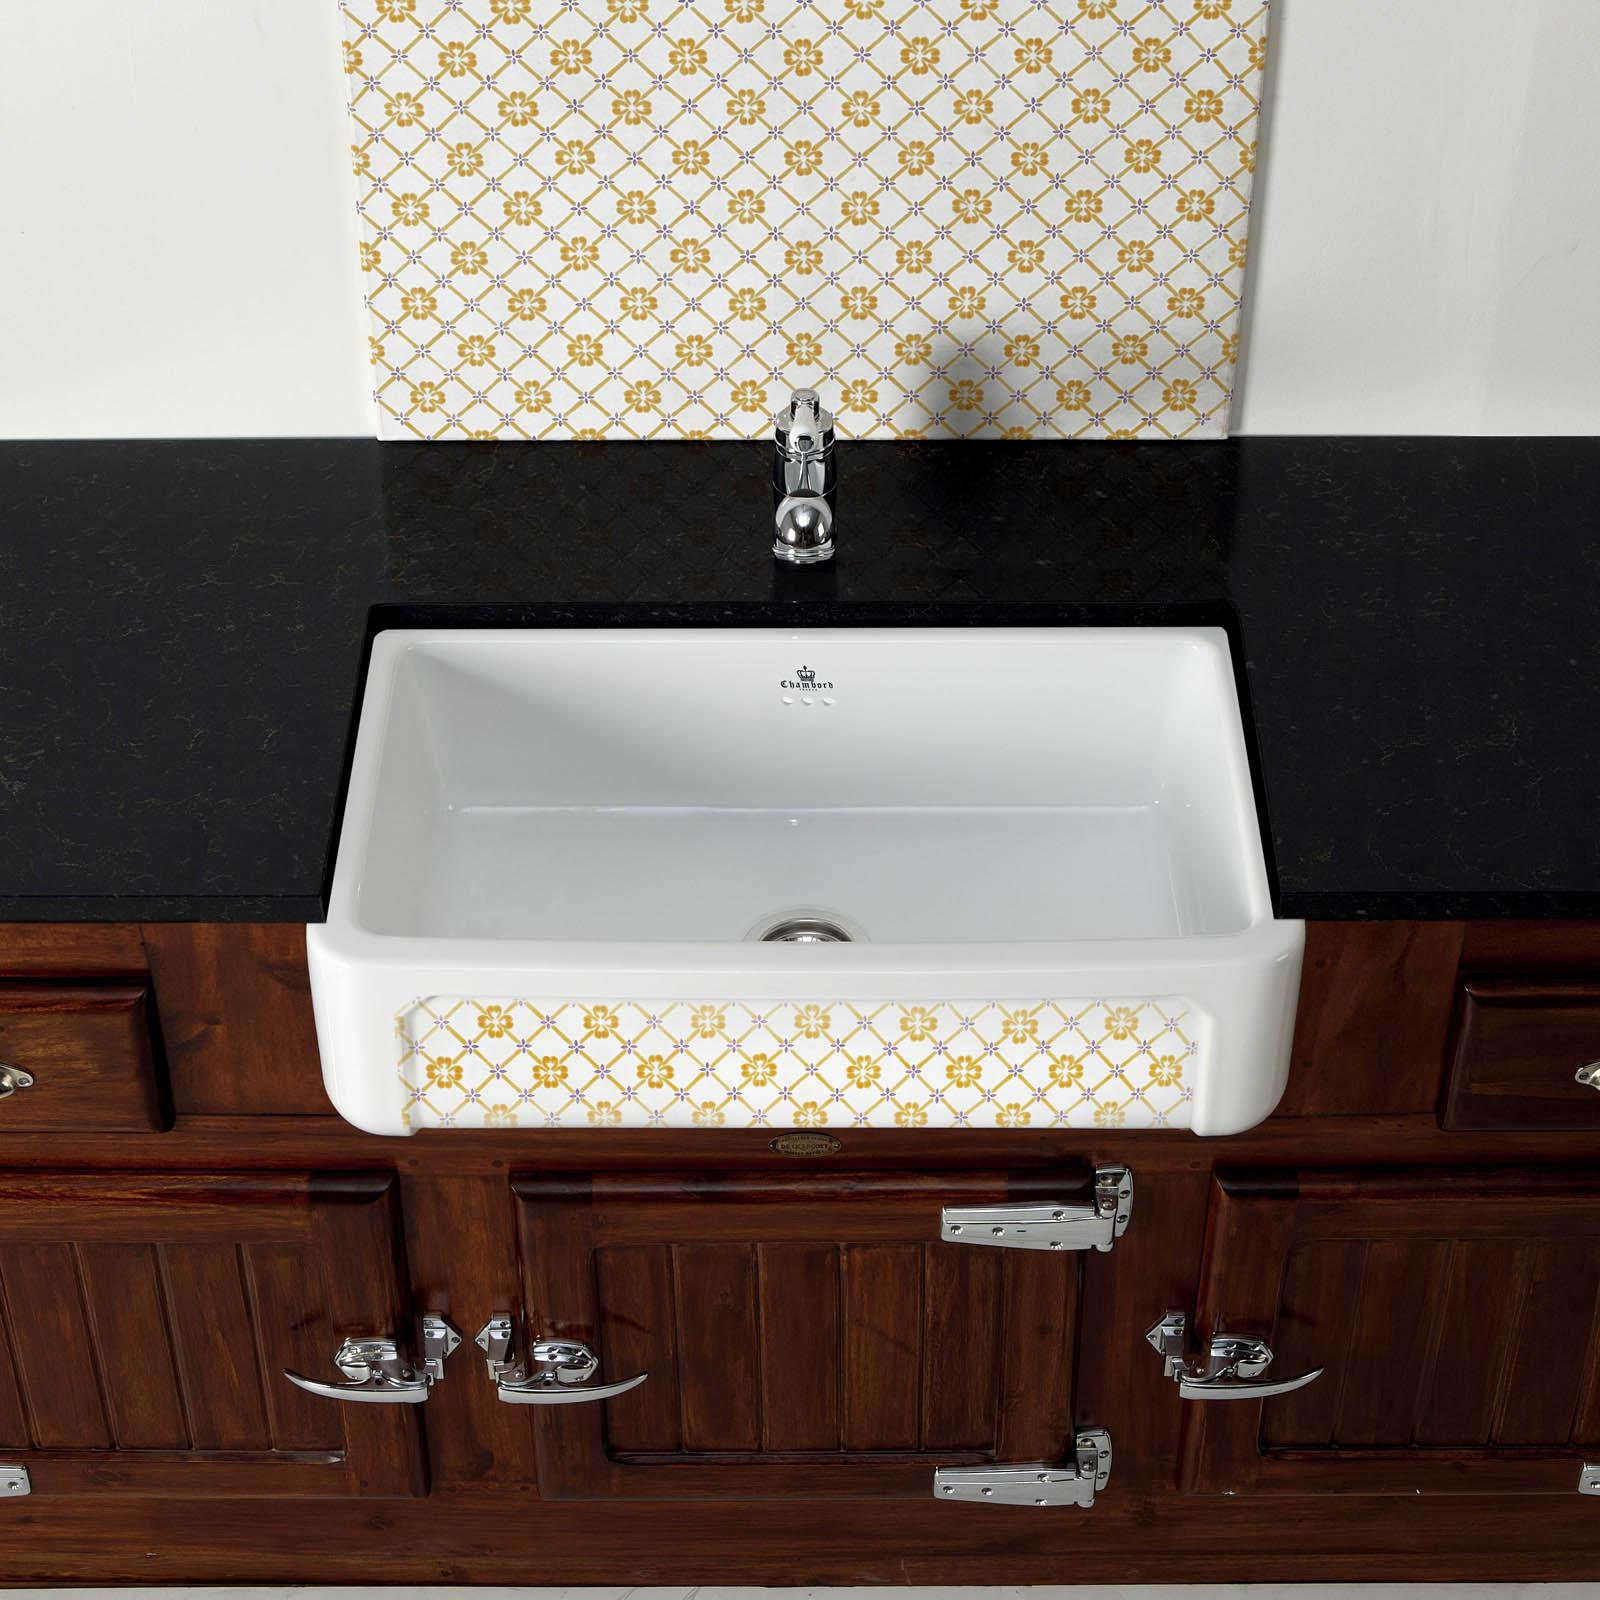 High-quality sink Henri II Provence - single bowl, decorated ceramic - ambience